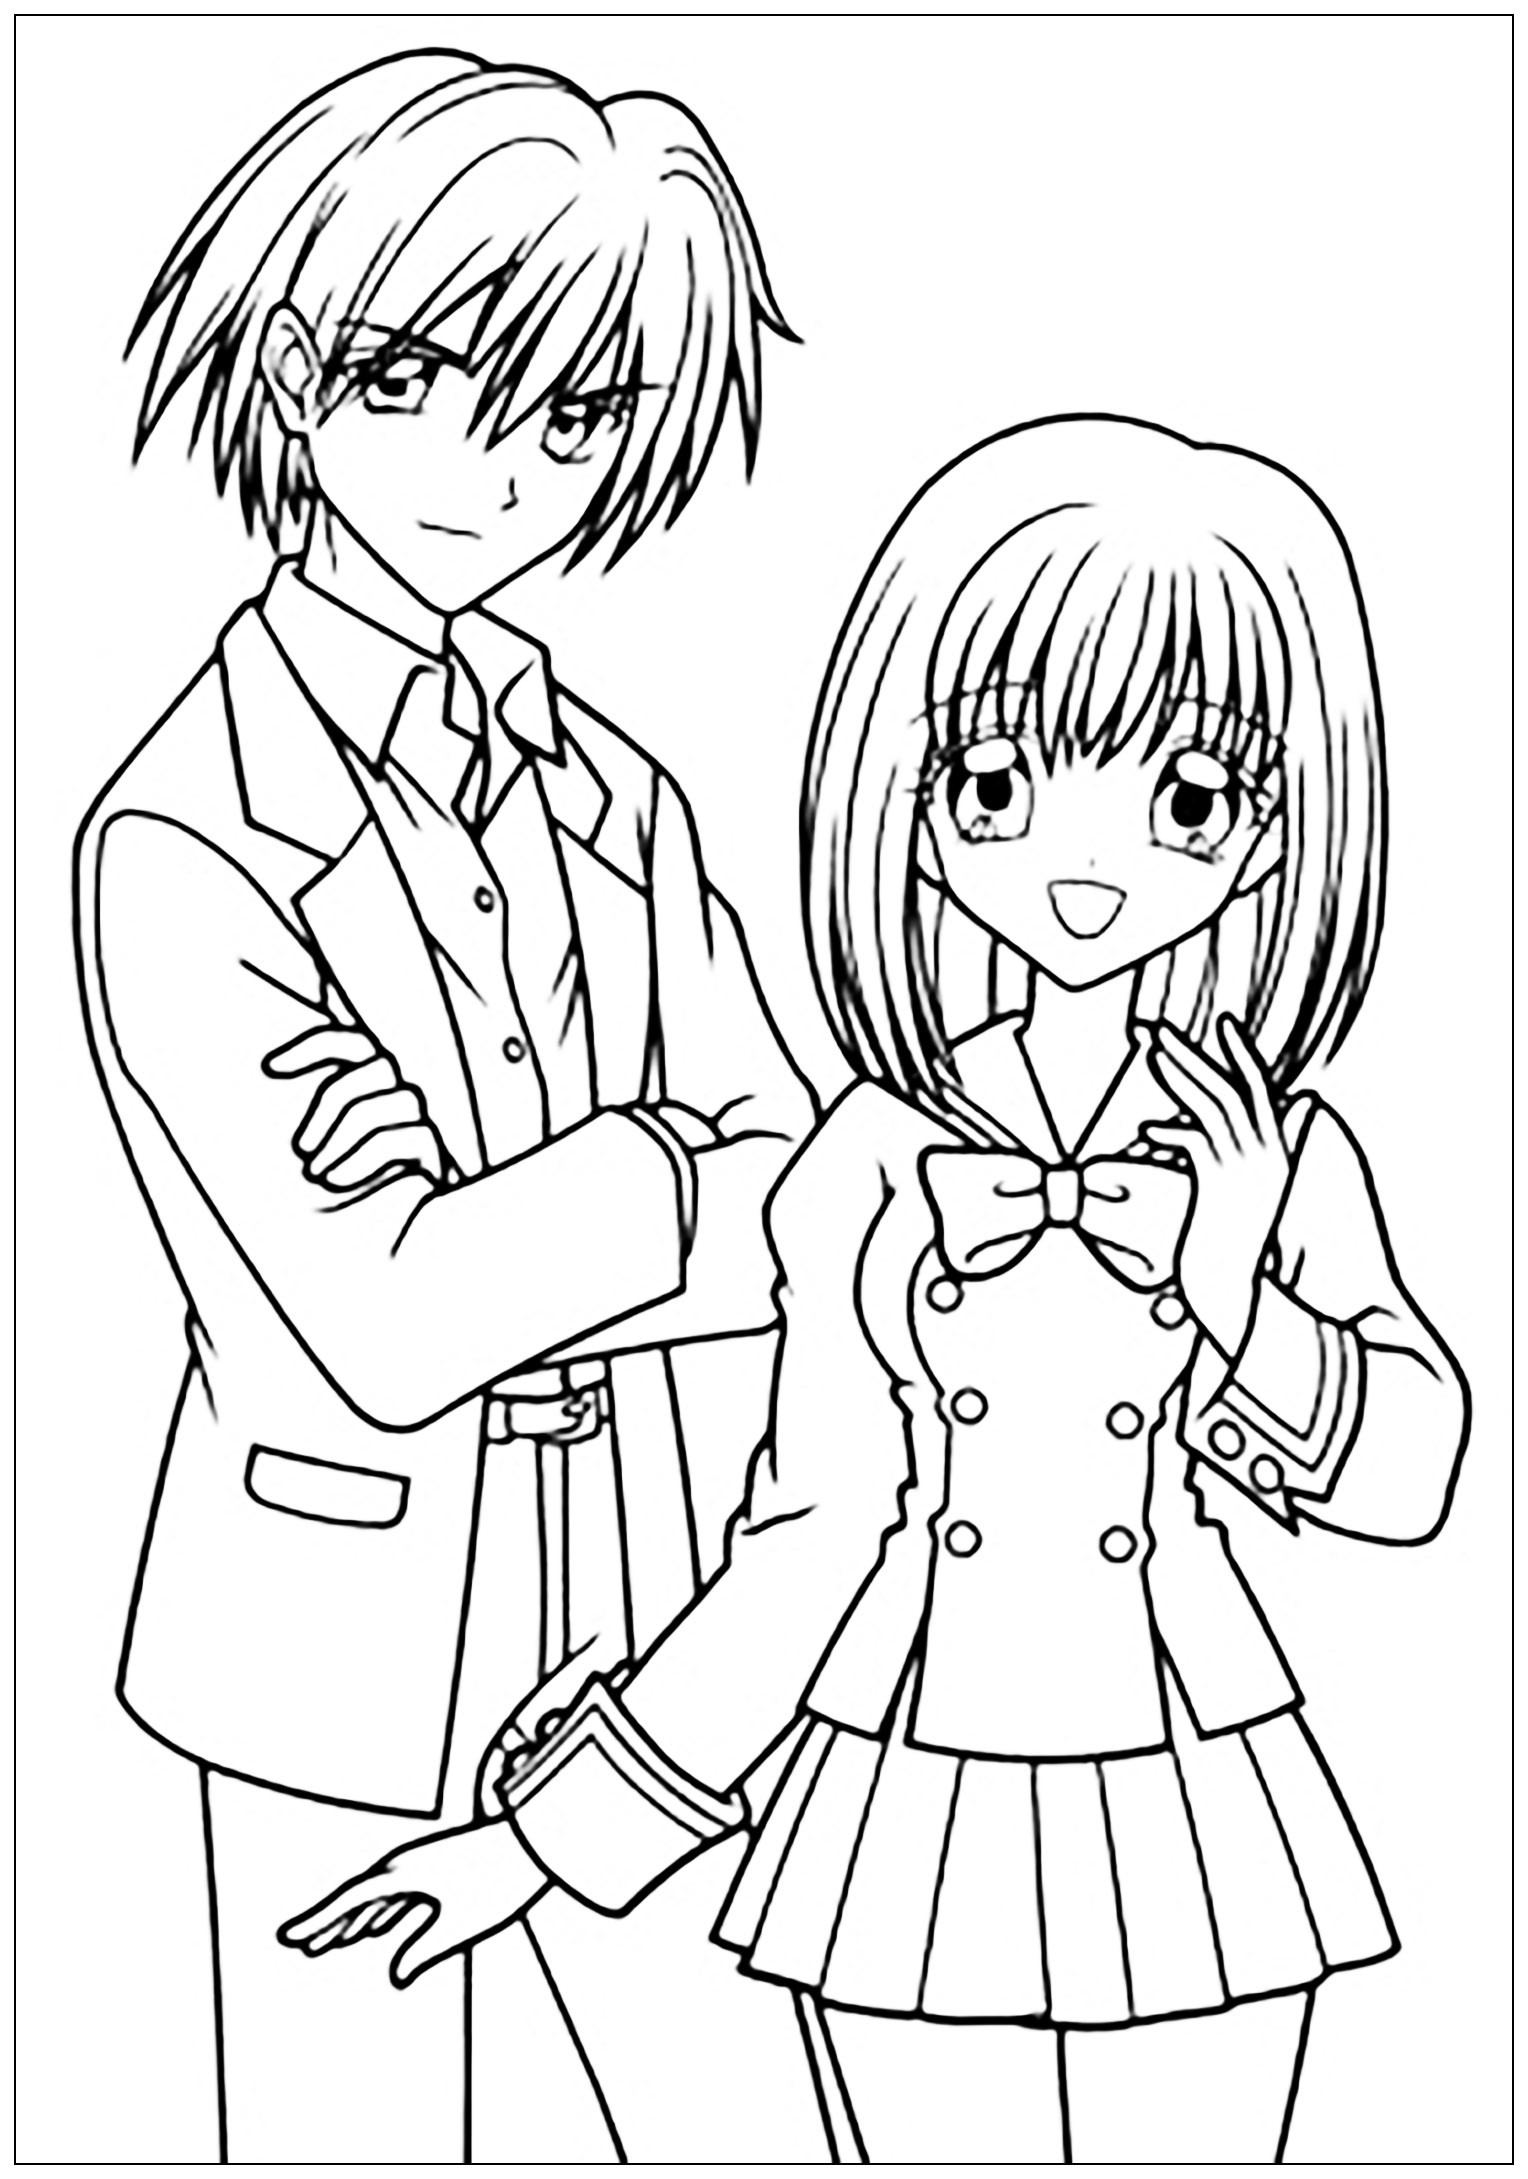 Anime School Girl Coloring Pages  Manga drawing boy and girl in school suit Manga Anime